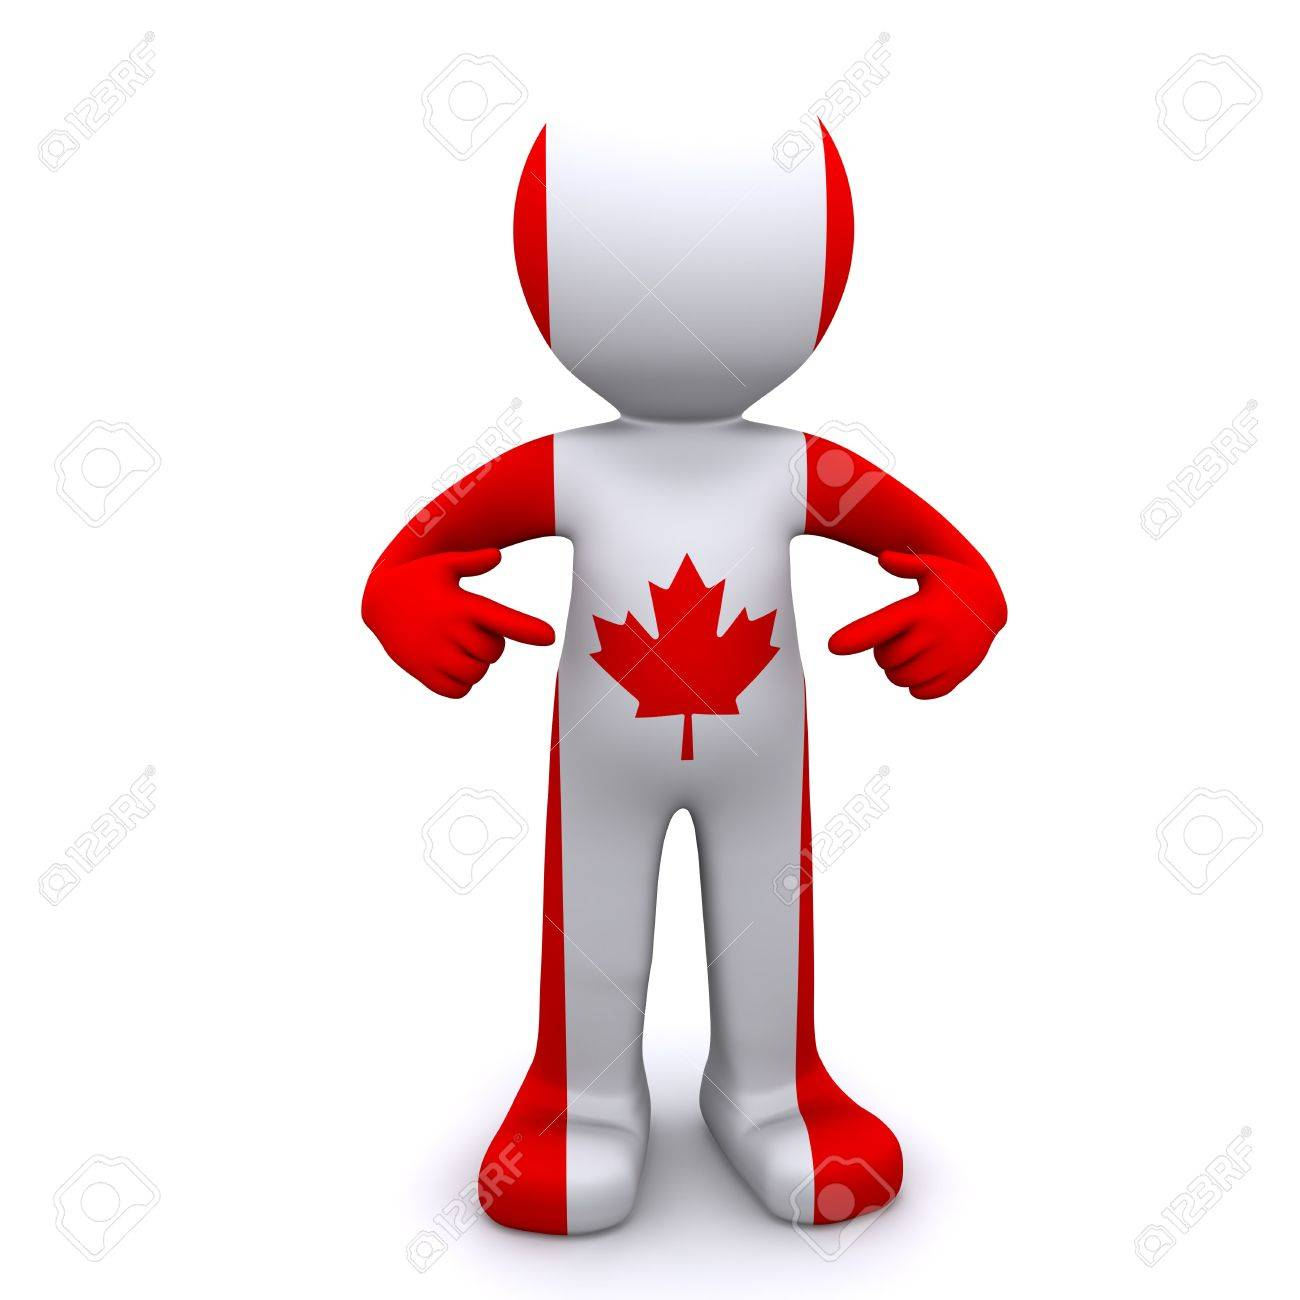 3d character textured with the canadian flag isolated on white